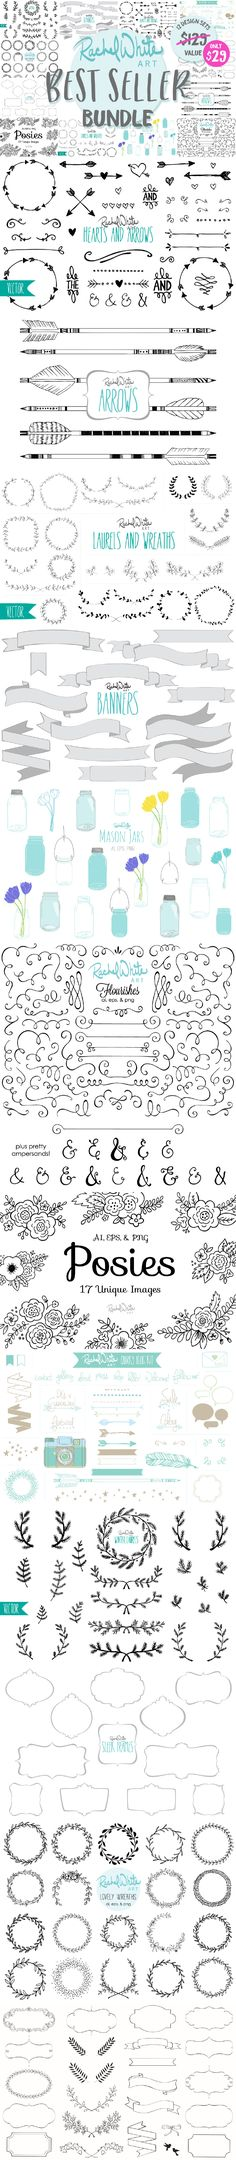 My Best Seller Bundle includes 12 of my most popular design sets. A $129 dollar value! There are frames, banners, flourishes, laurels, and wreaths of all kinds. Florals, text dividers, ornaments, hearts, arrows, and mason jars. Everything you may need for a variety of design projects. You'll always find something useful in here.  Introductory price of $29 dollars. A $100 savings! Yay!